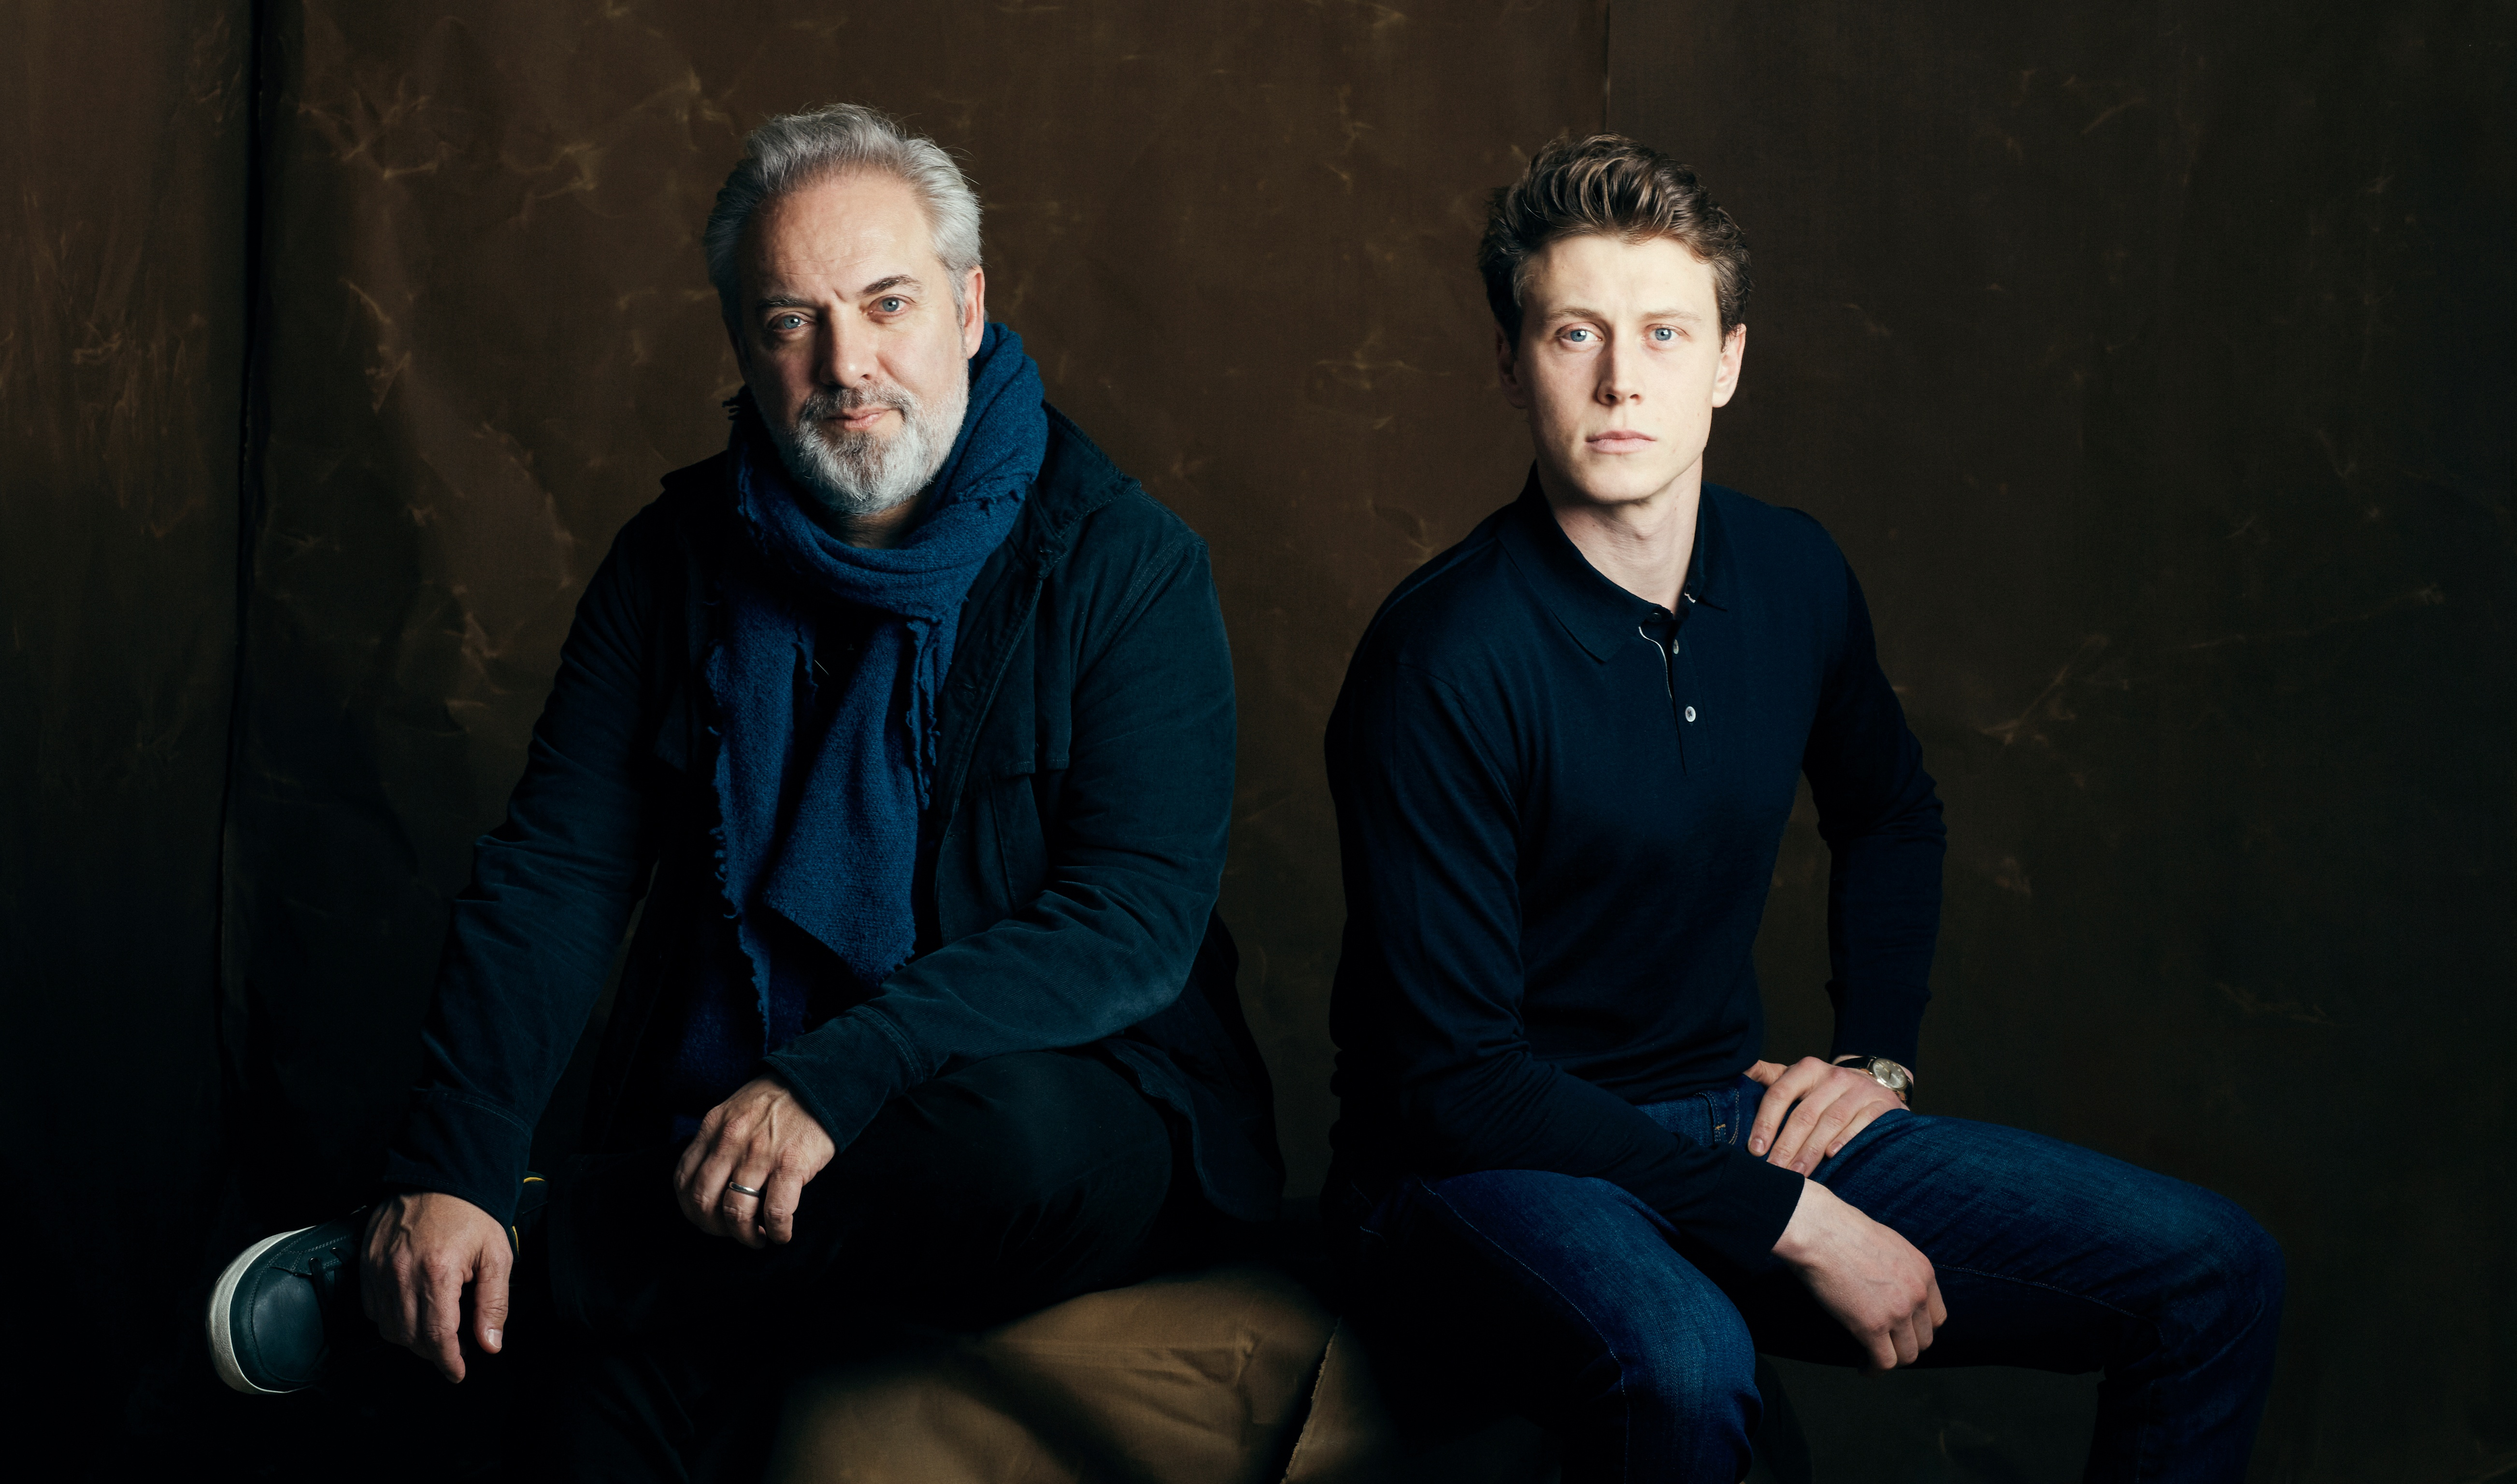 George MacKay and Sam Mendes - Backstage Photoshoot - 2020